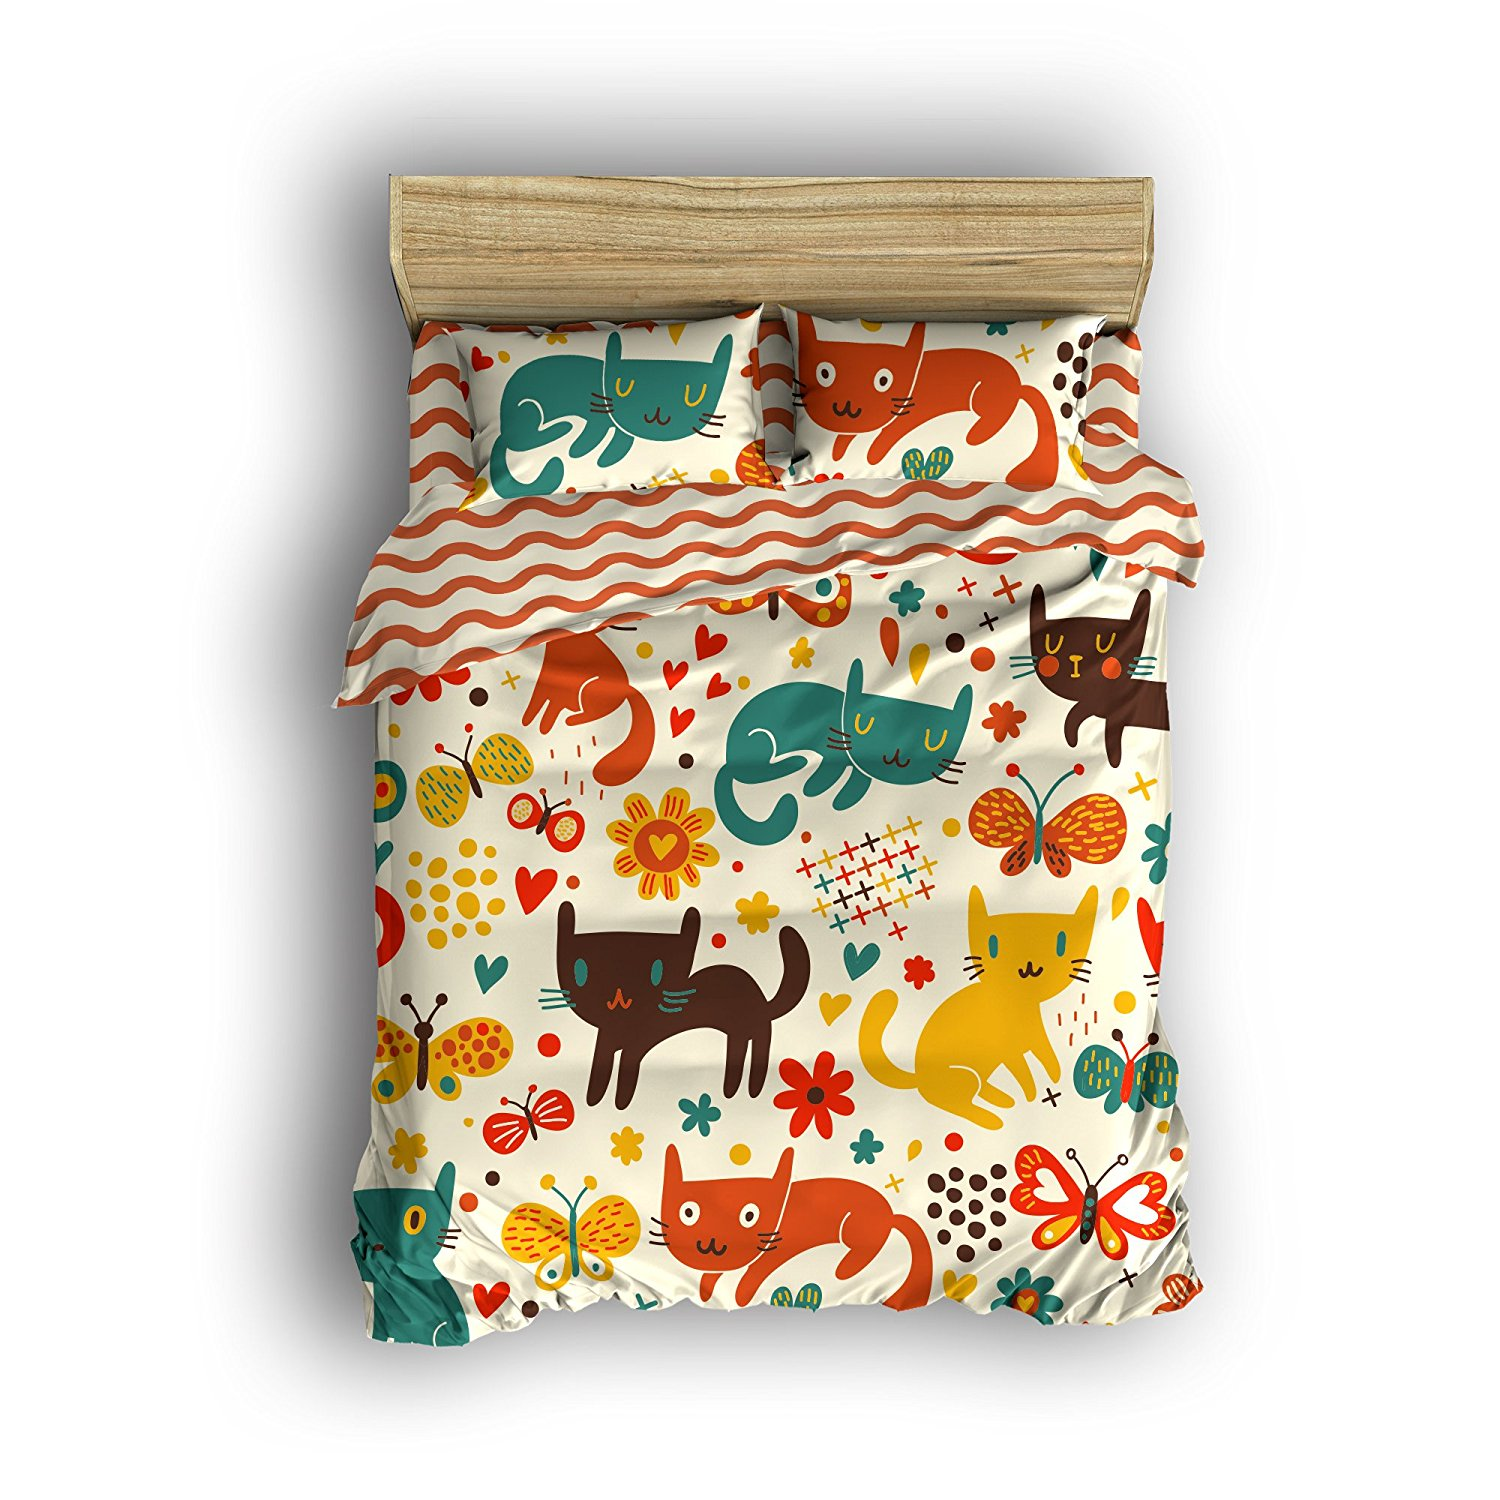 Ensemble De Literie Pleine Taille Cute Cartoon Cats Housse De